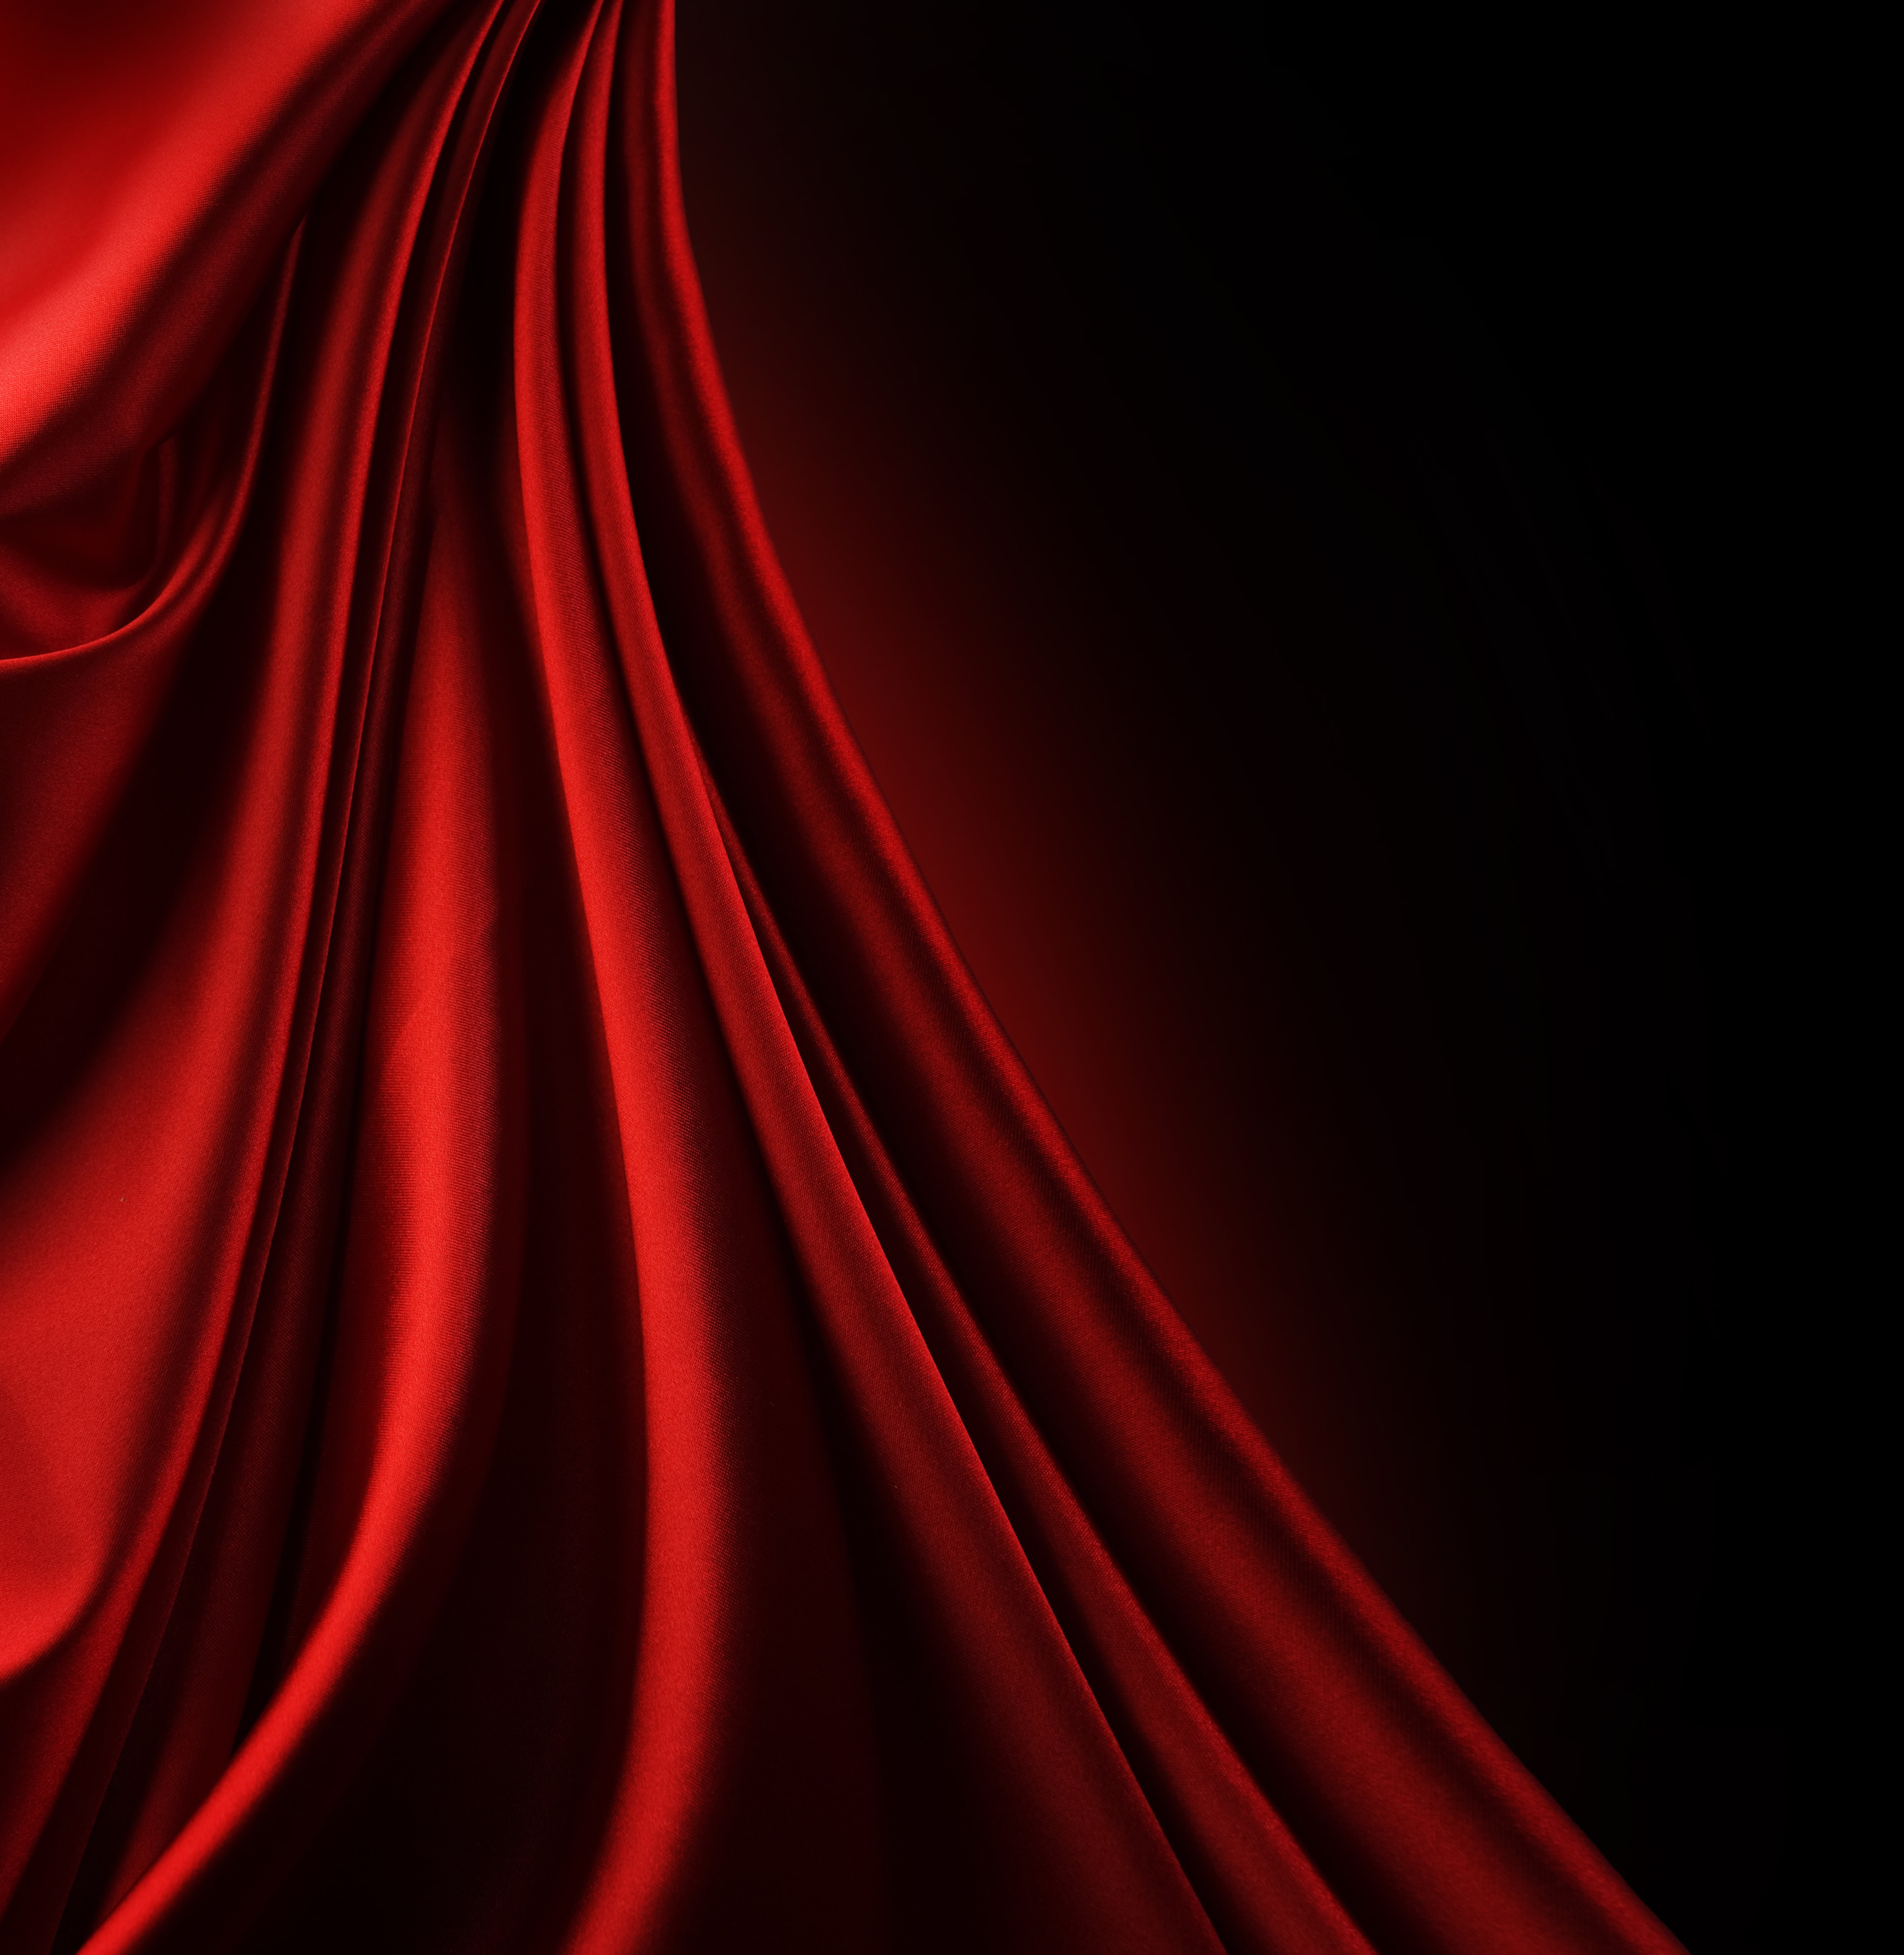 Red Satin Wallpaper - WallpaperSafari